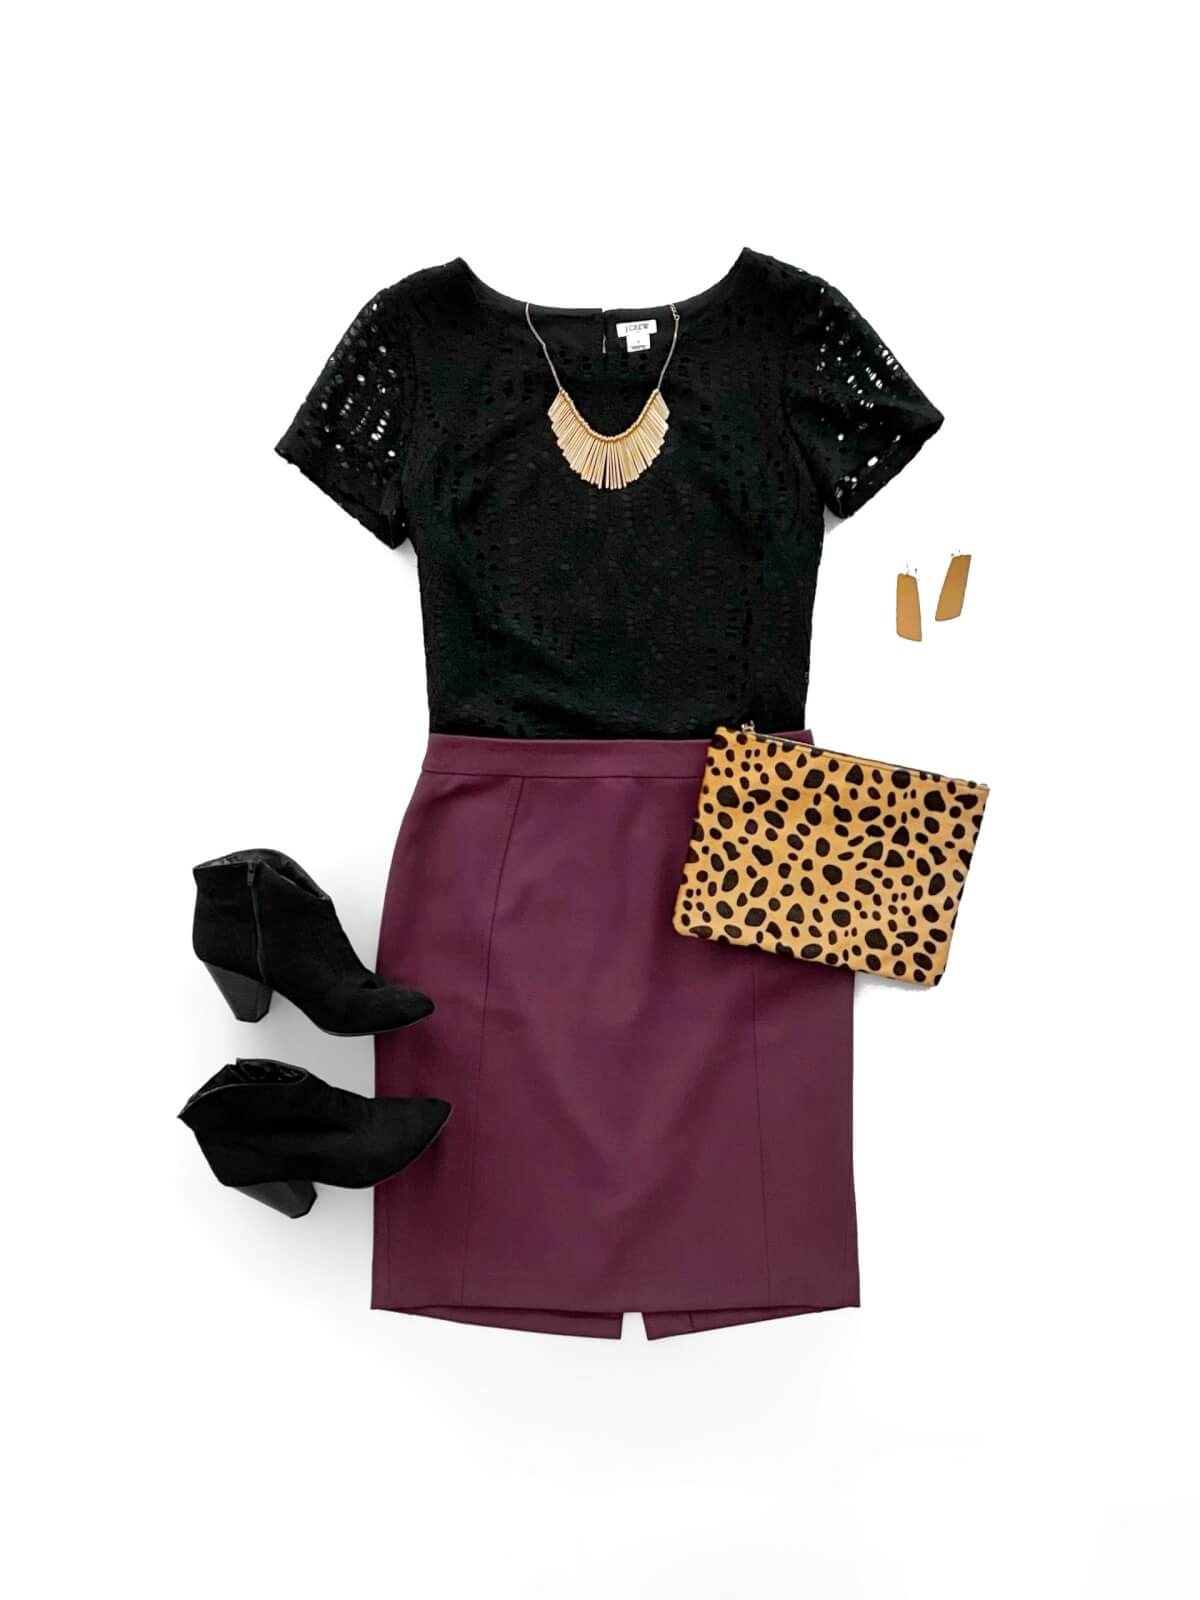 Dressy Outfit: solid-colored top black blouse + maroon skirt + black booties + gold statement necklace + gold earrings + leopard clutch flat lay